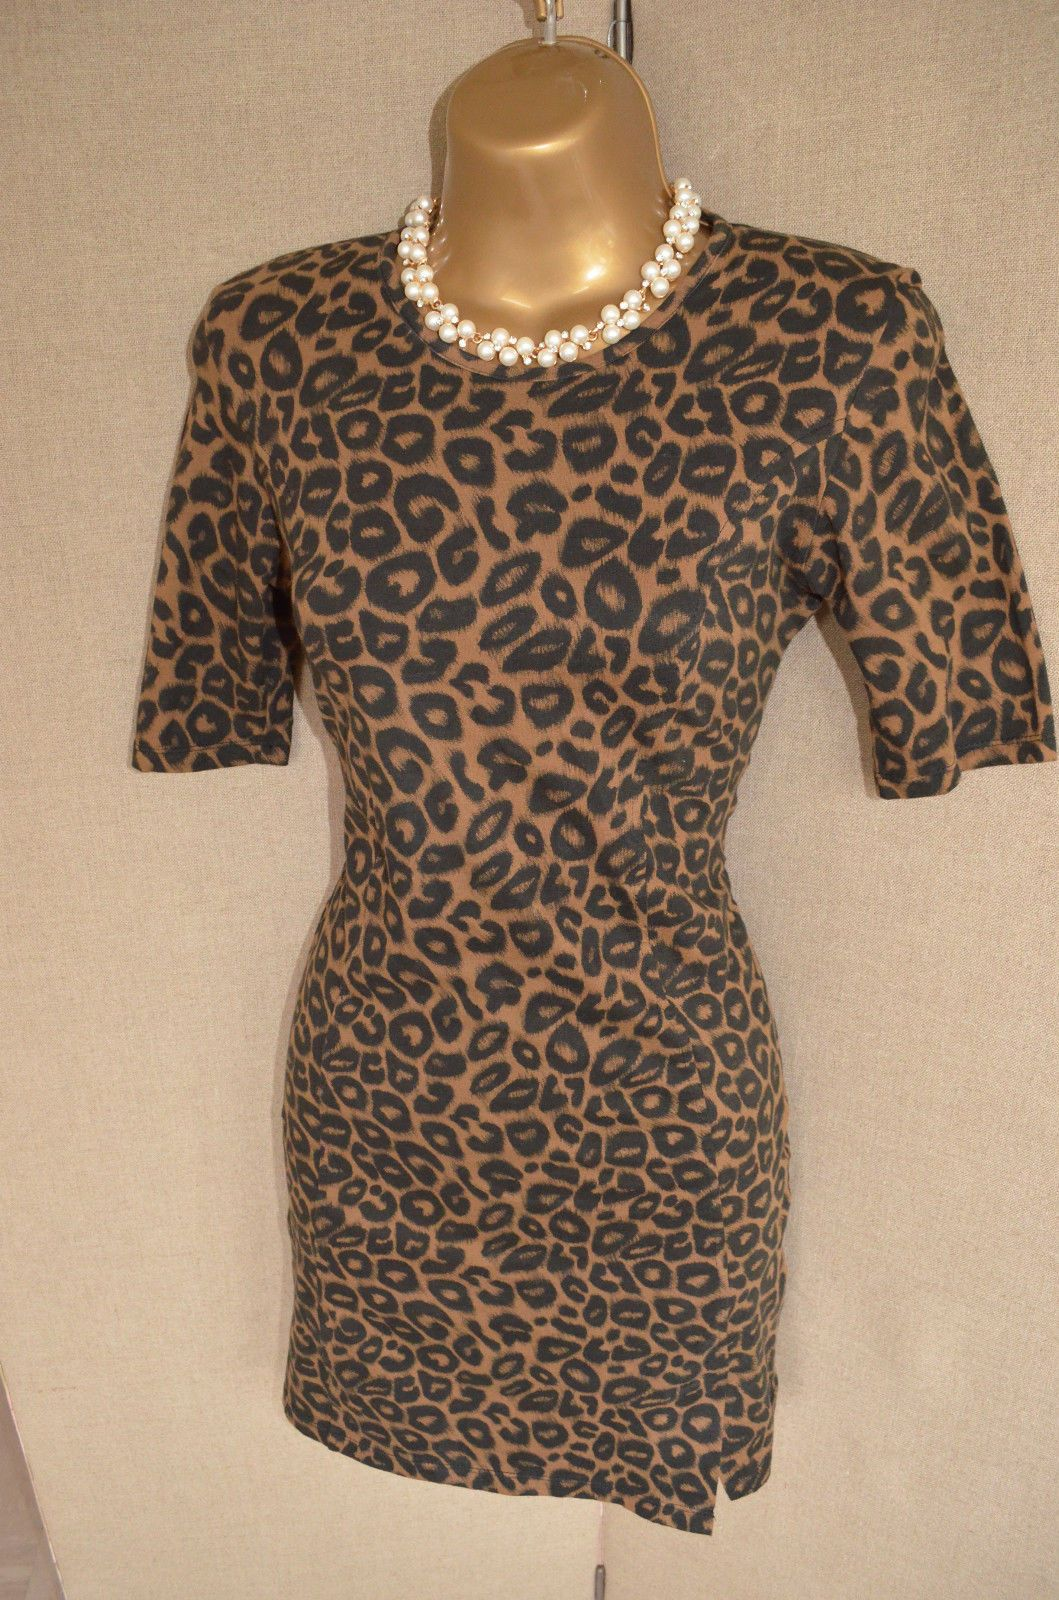 Designer leopard print dress with a black mess insert at the back